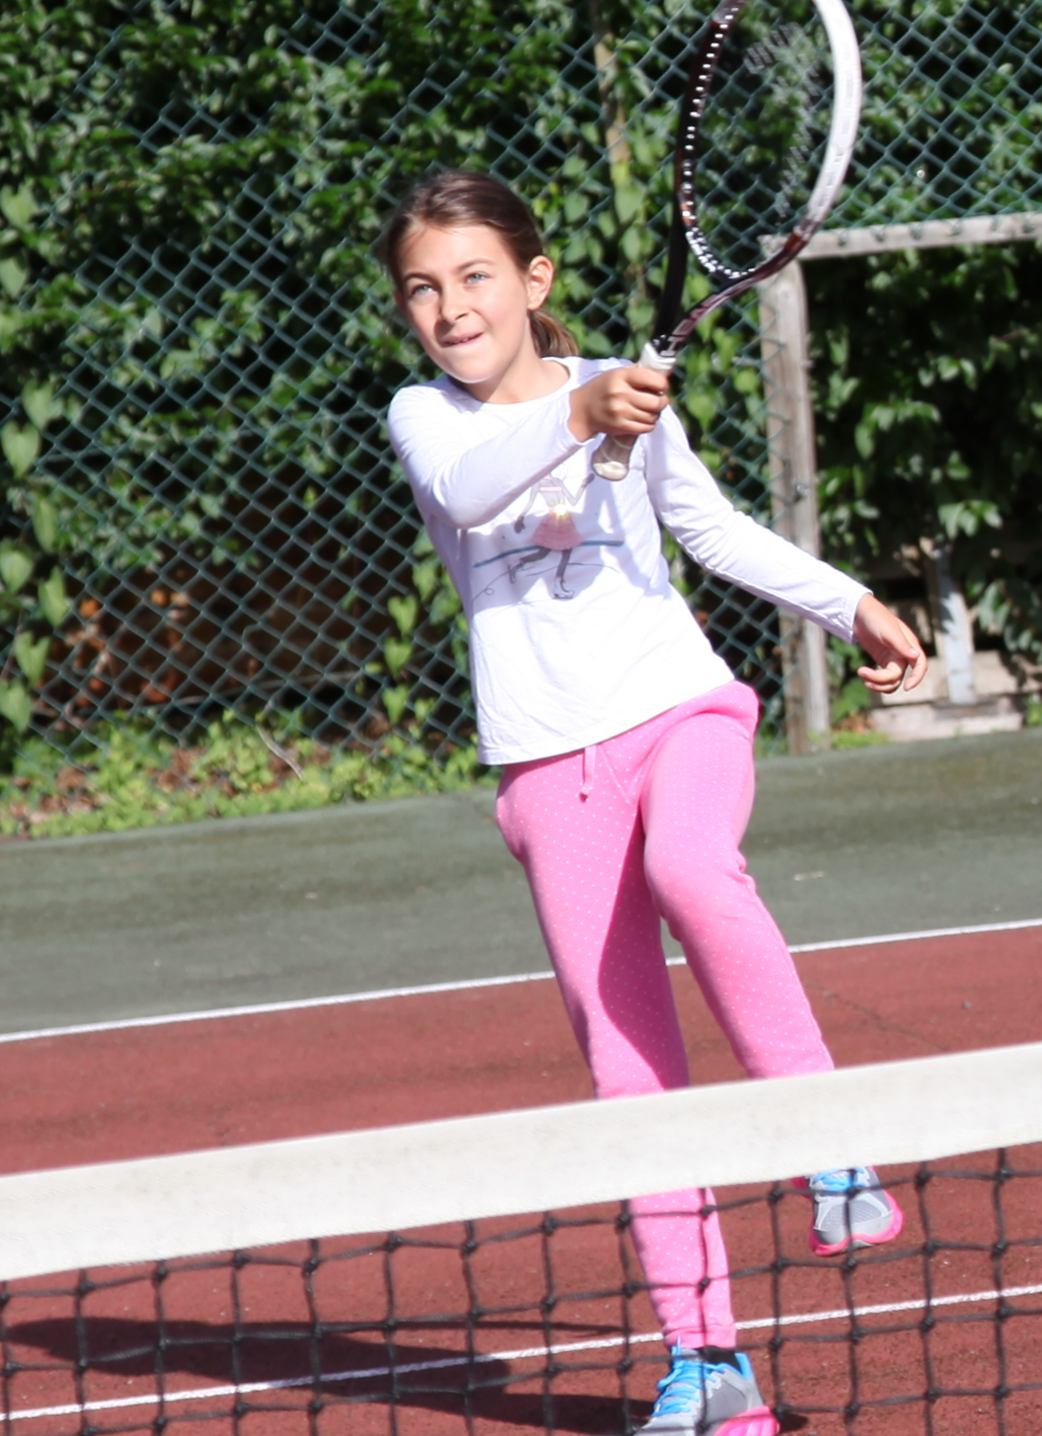 Attacking forehand